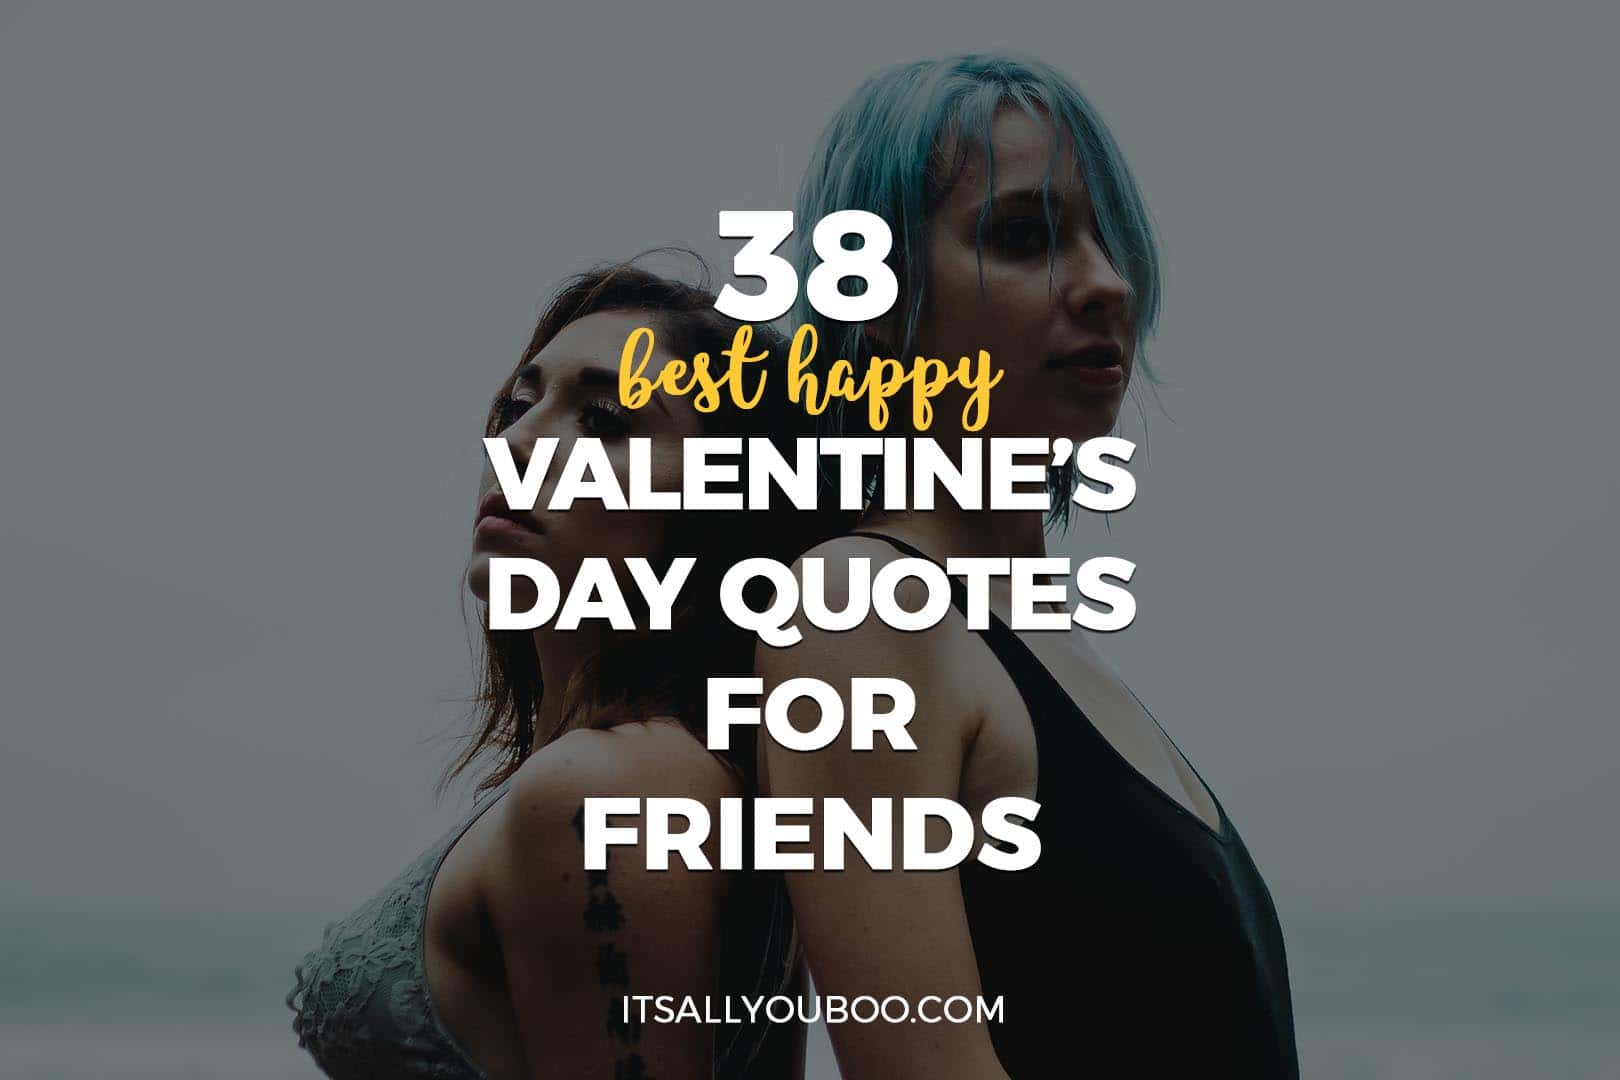 Image of: Funny Quotereel 38 Best Happy Valentines Day Quotes For Friends Its All You Boo